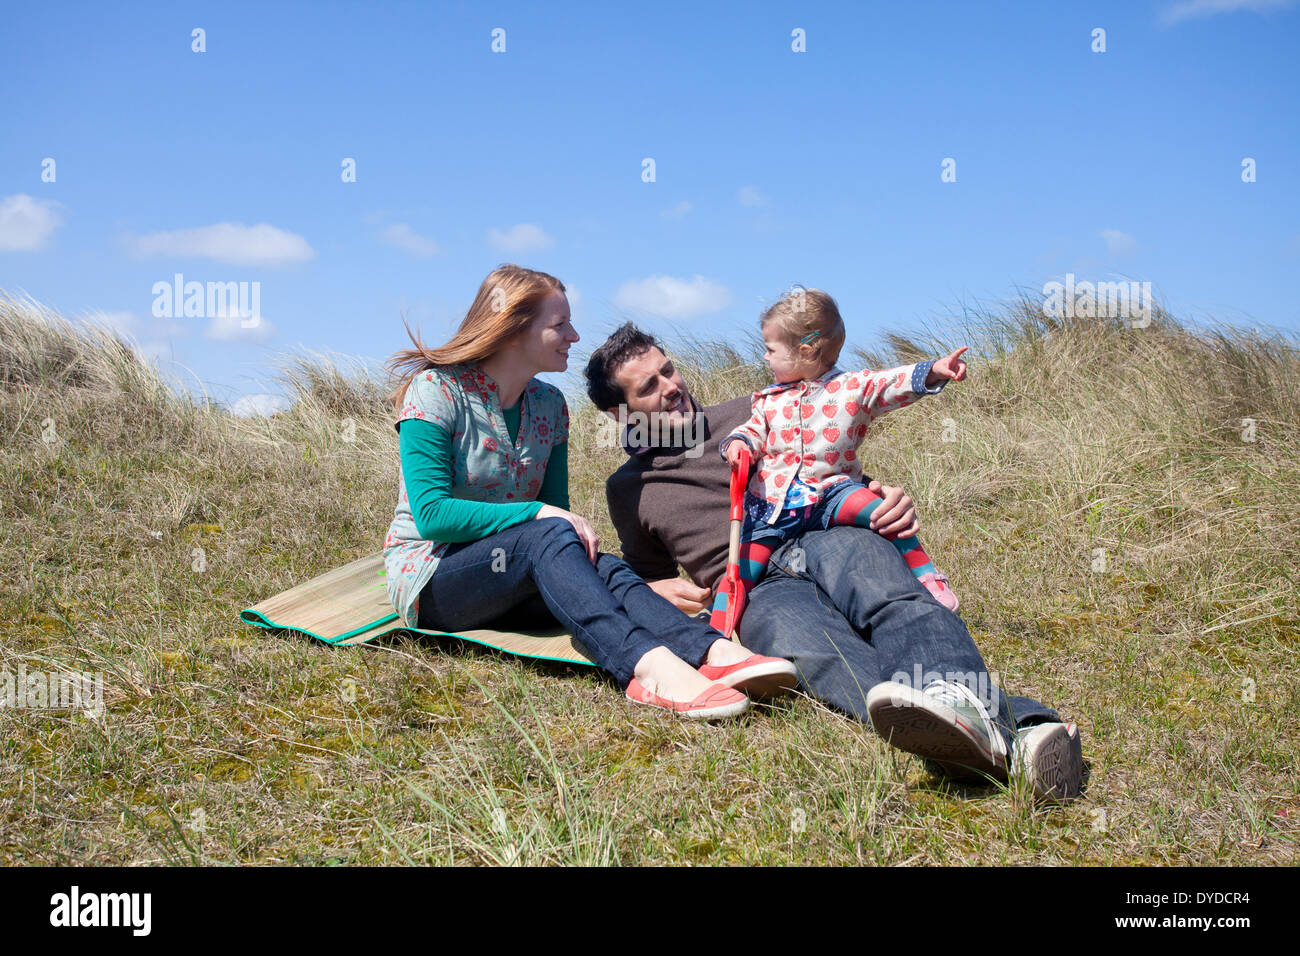 A young family having fun on the sand dunes at Horsey Beach on the Norfolk coast. - Stock Image